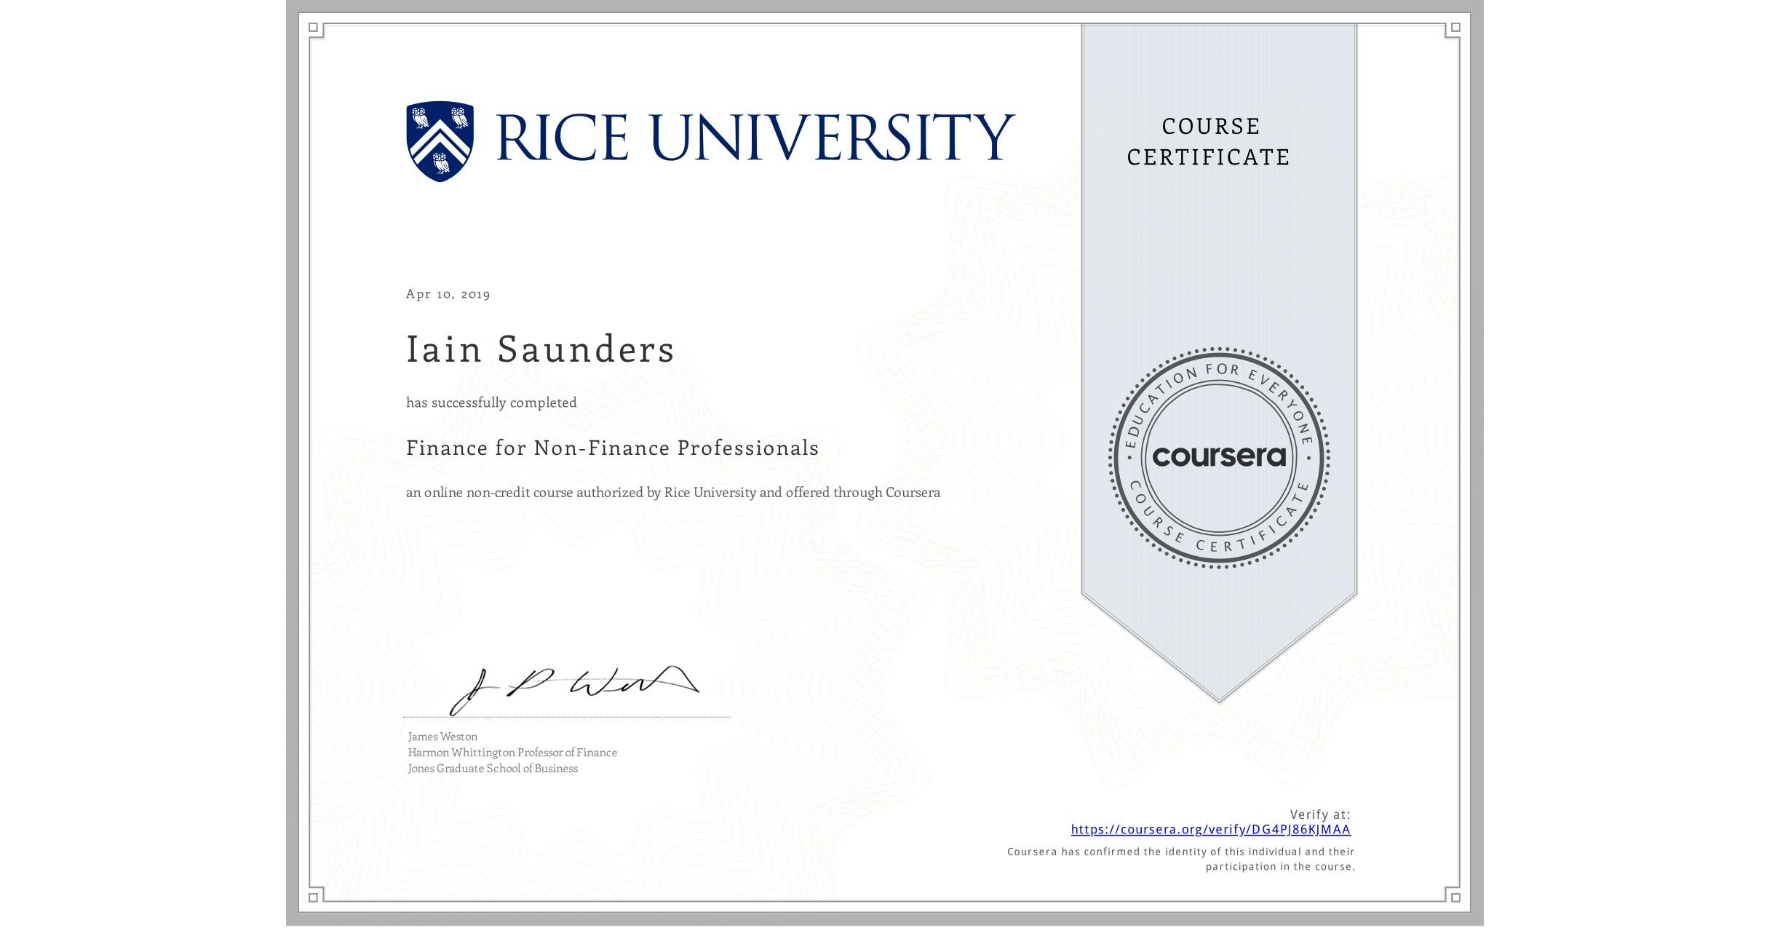 View certificate for Iain Saunders, Finance for Non-Finance Professionals, an online non-credit course authorized by Rice University and offered through Coursera